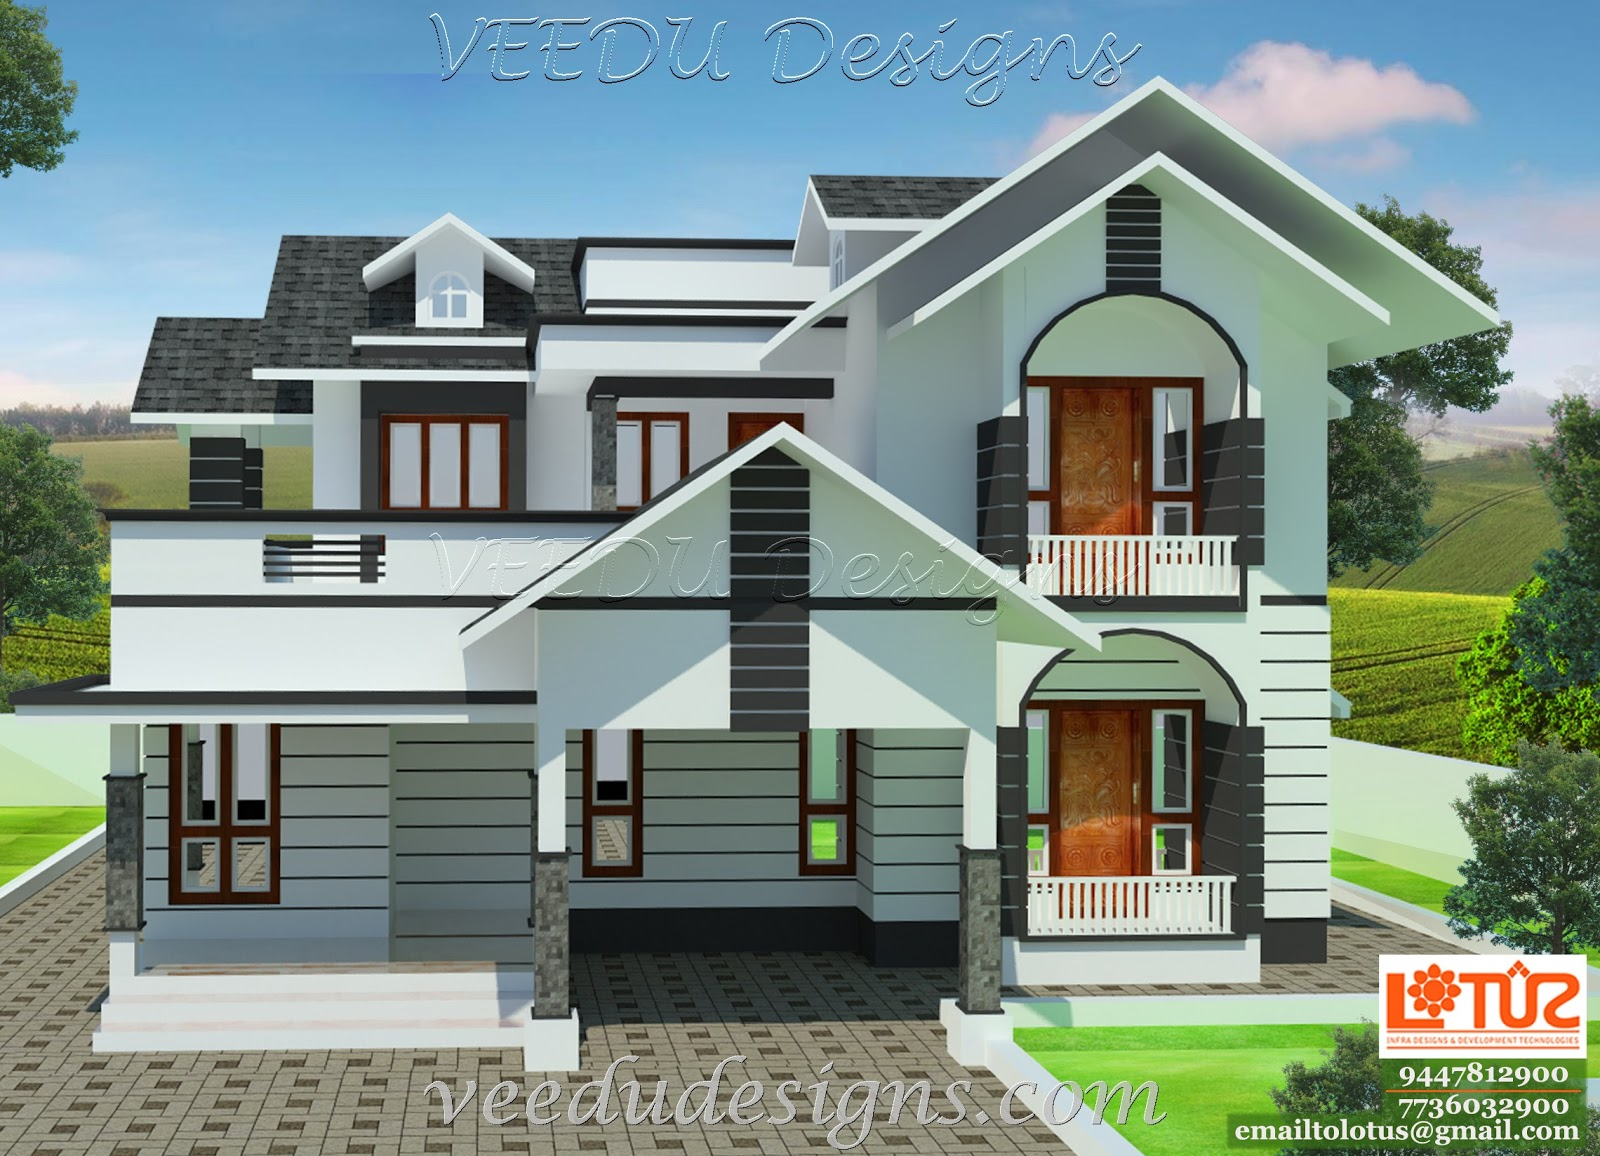 Veedu designs joy studio design gallery best design for Online home design plans